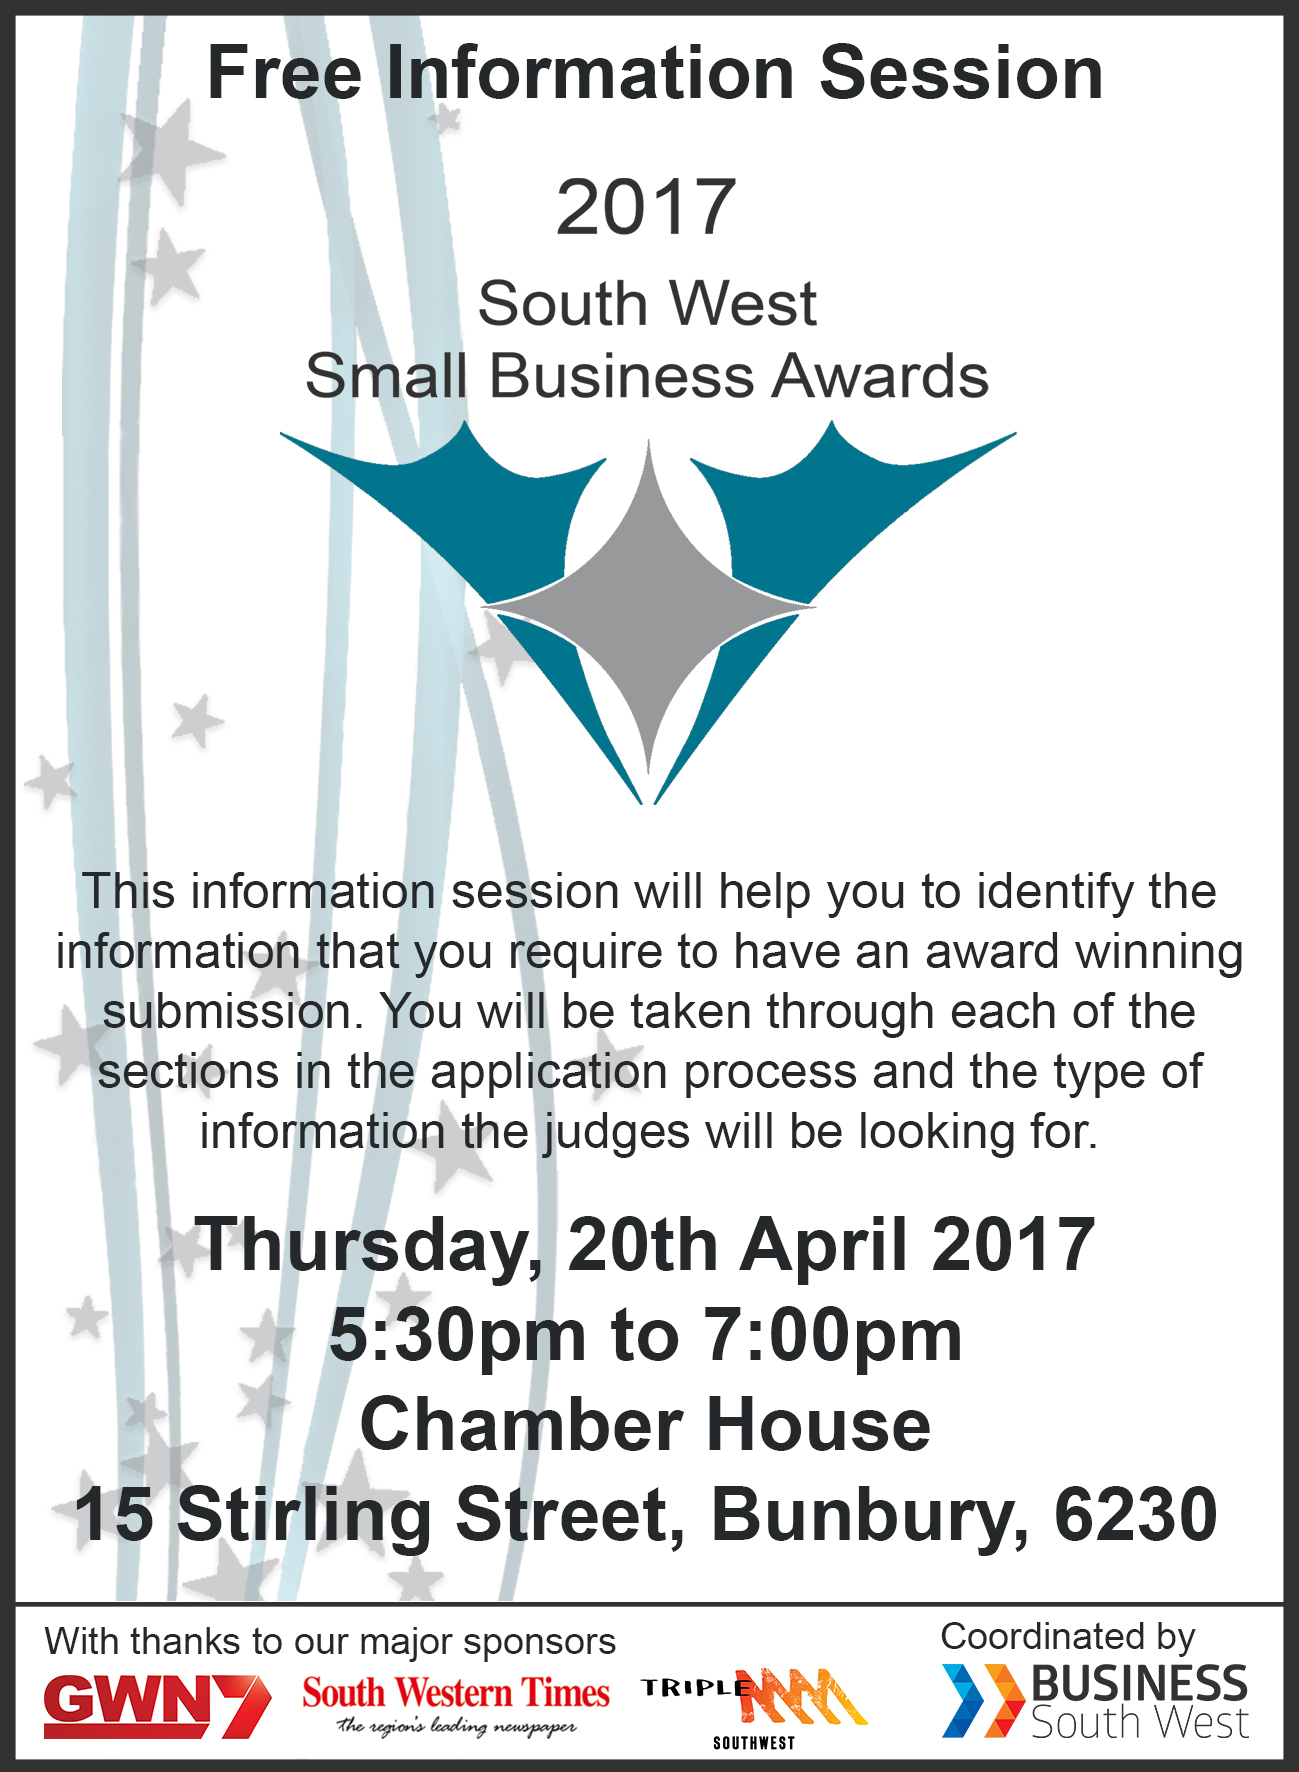 Bunbury Information Session